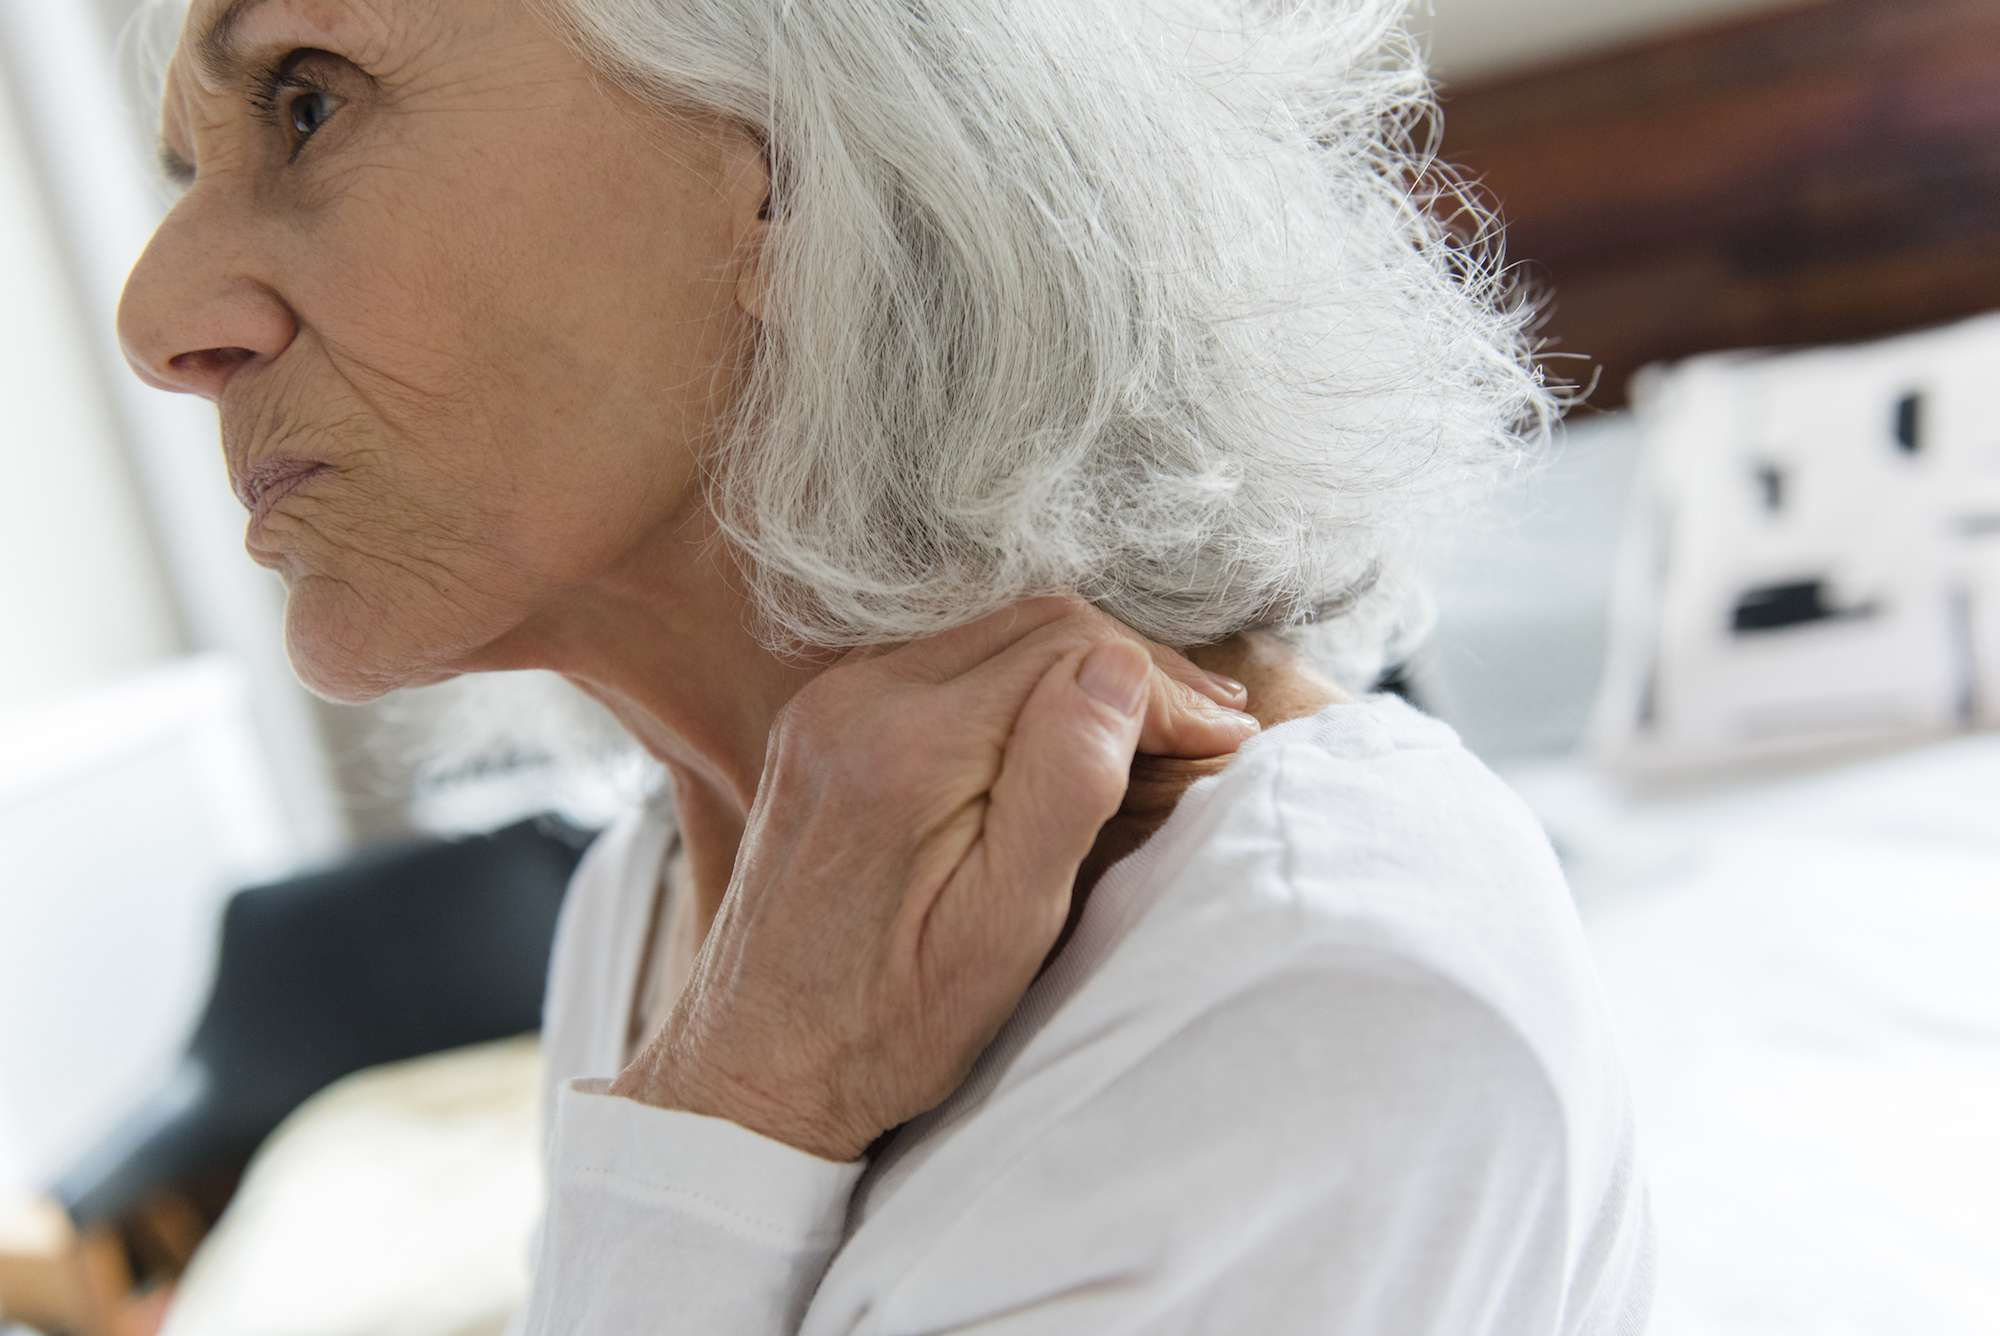 An older woman rubbing her neck